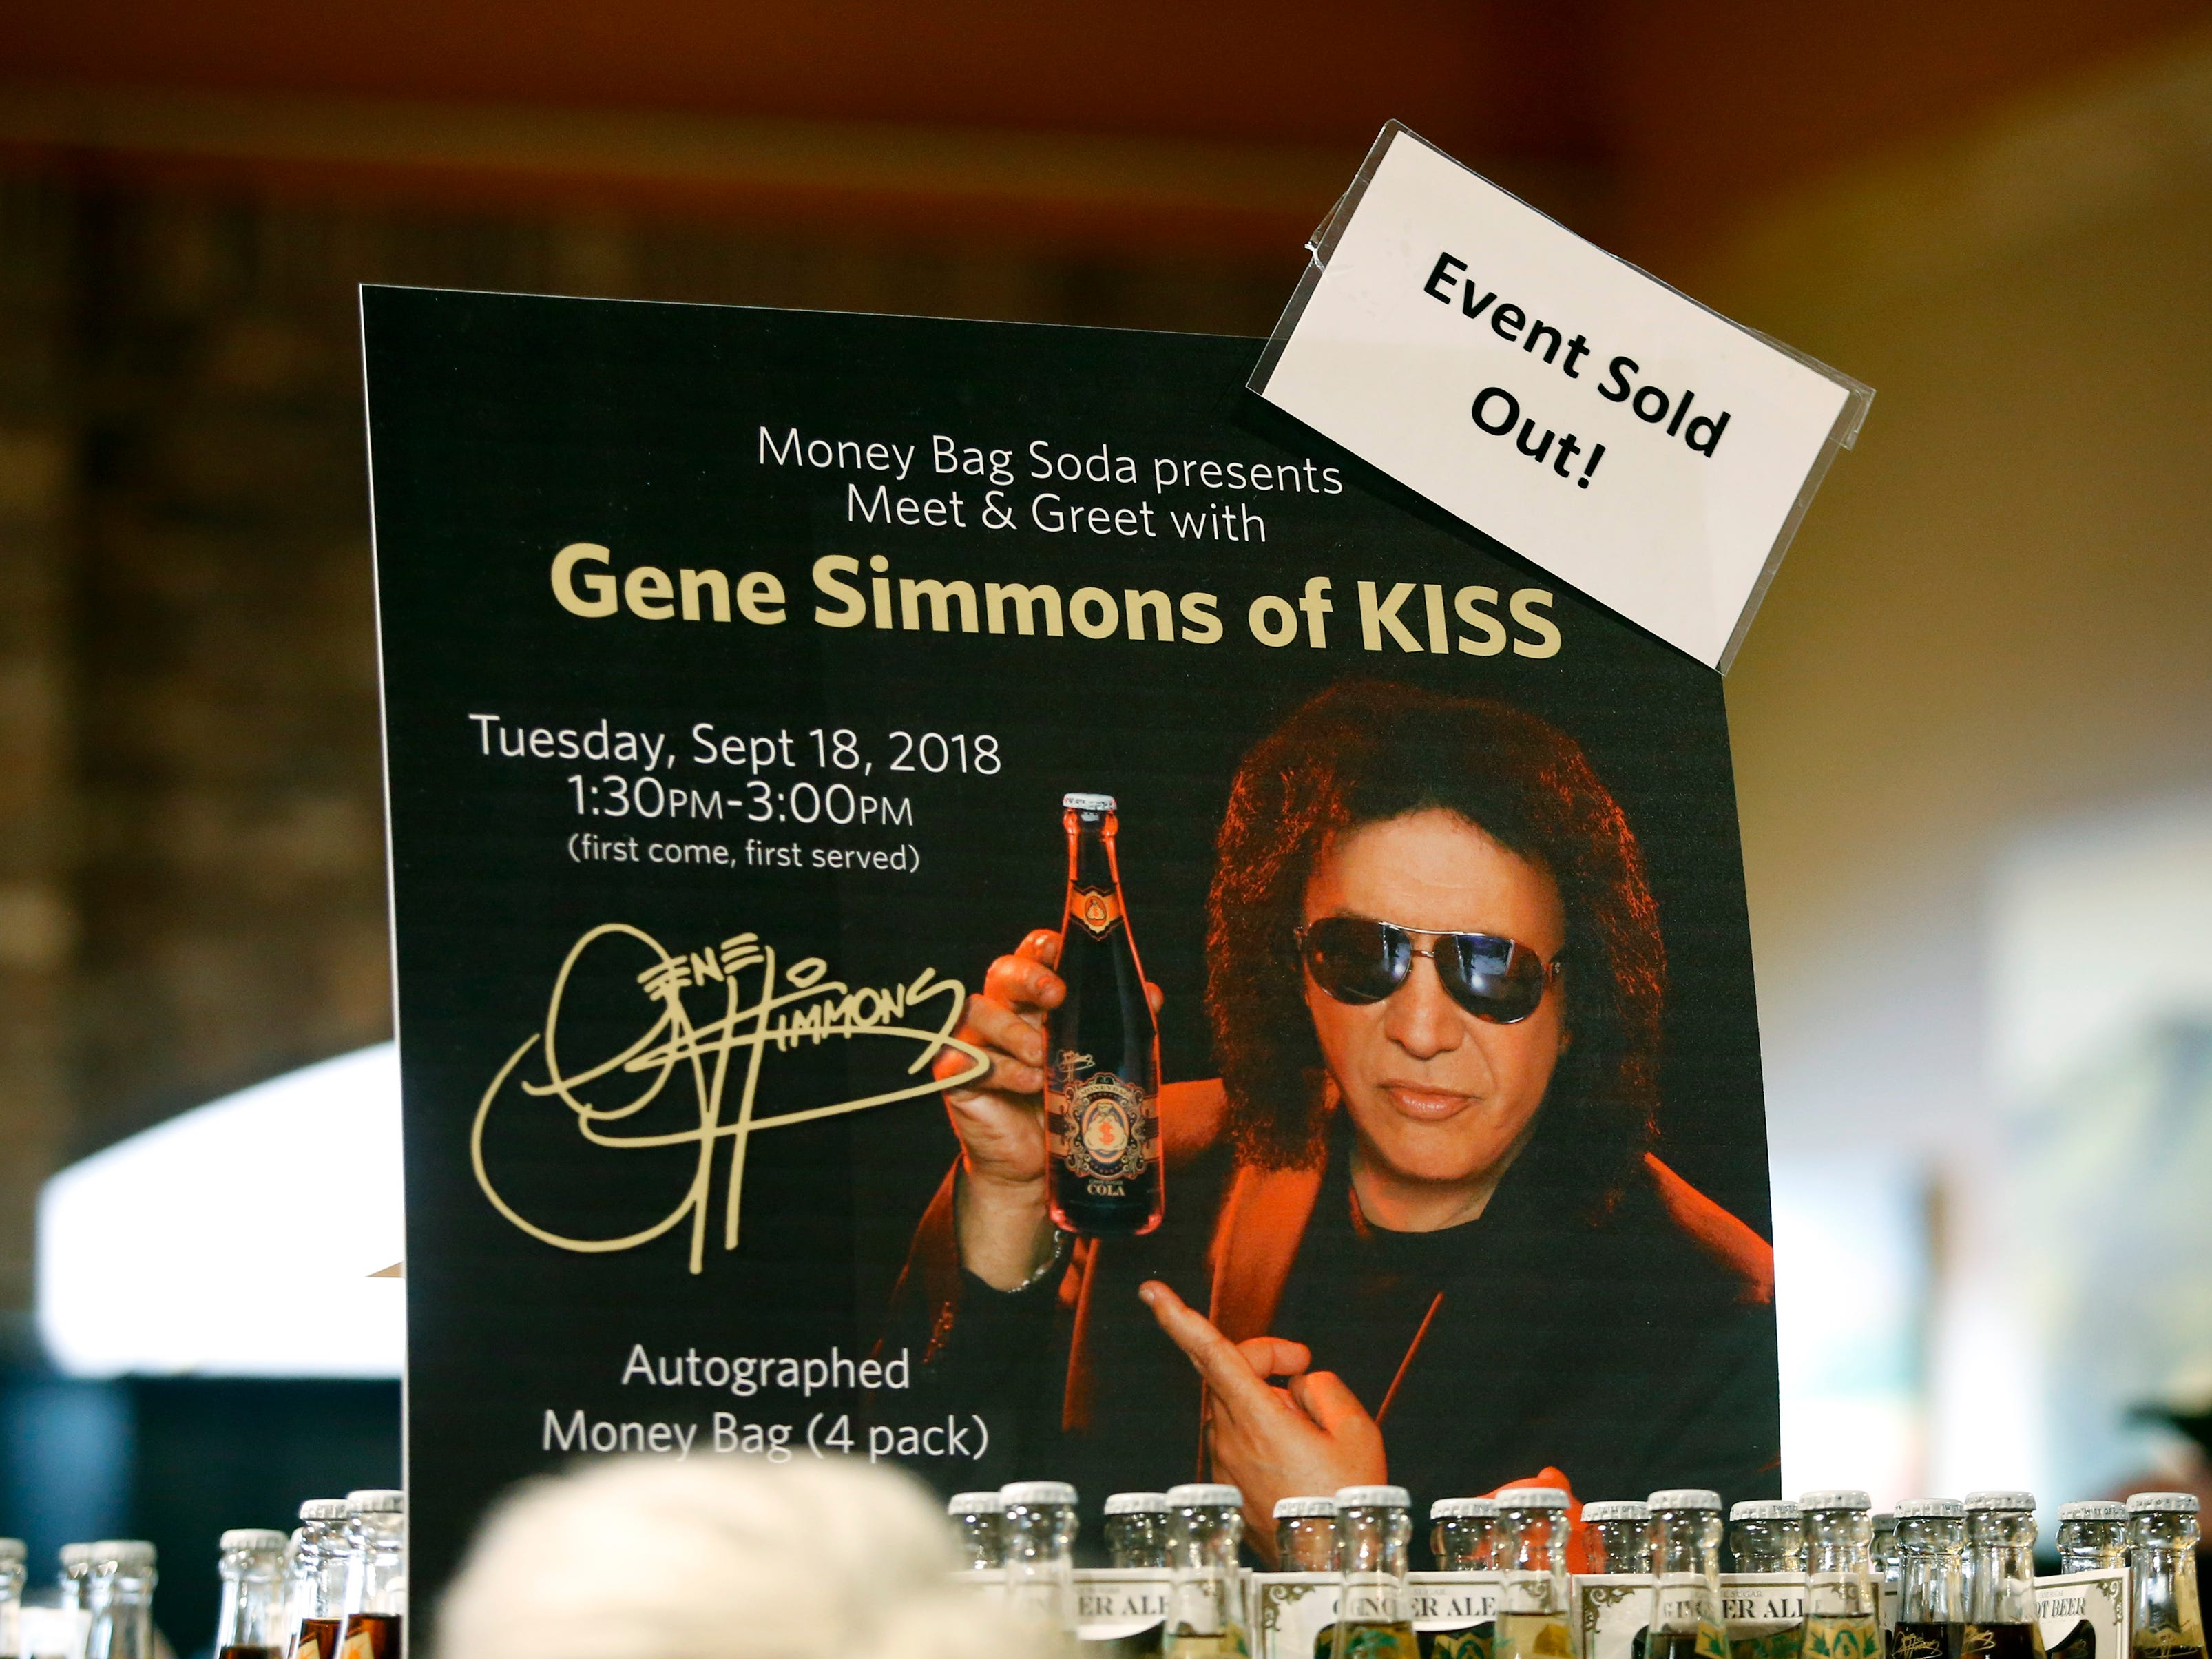 KISS co-founder Gene Simmons makes an appearance at the Chili-Paul Wegmans store to promote his MoneyBag Sodas.